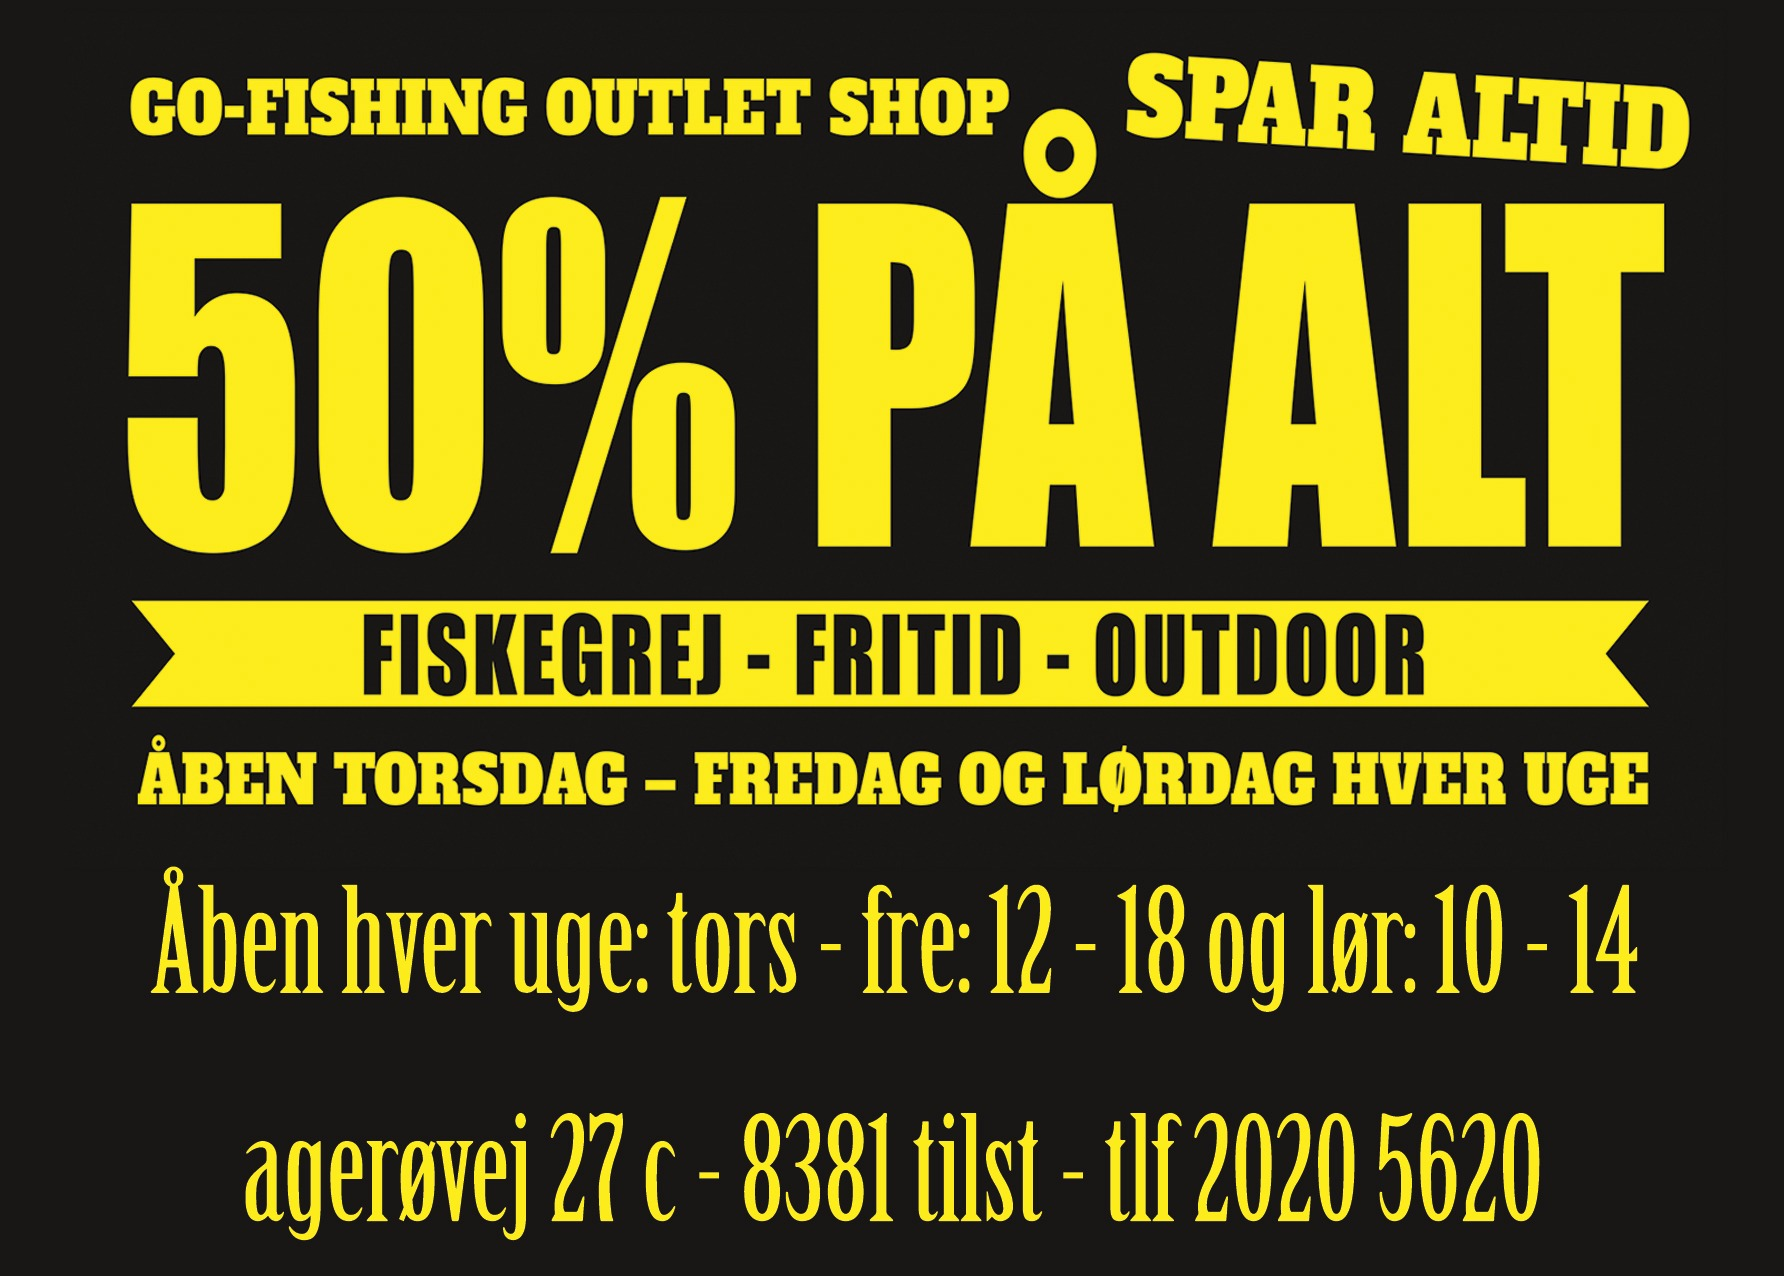 Go-Fishing Outletshop